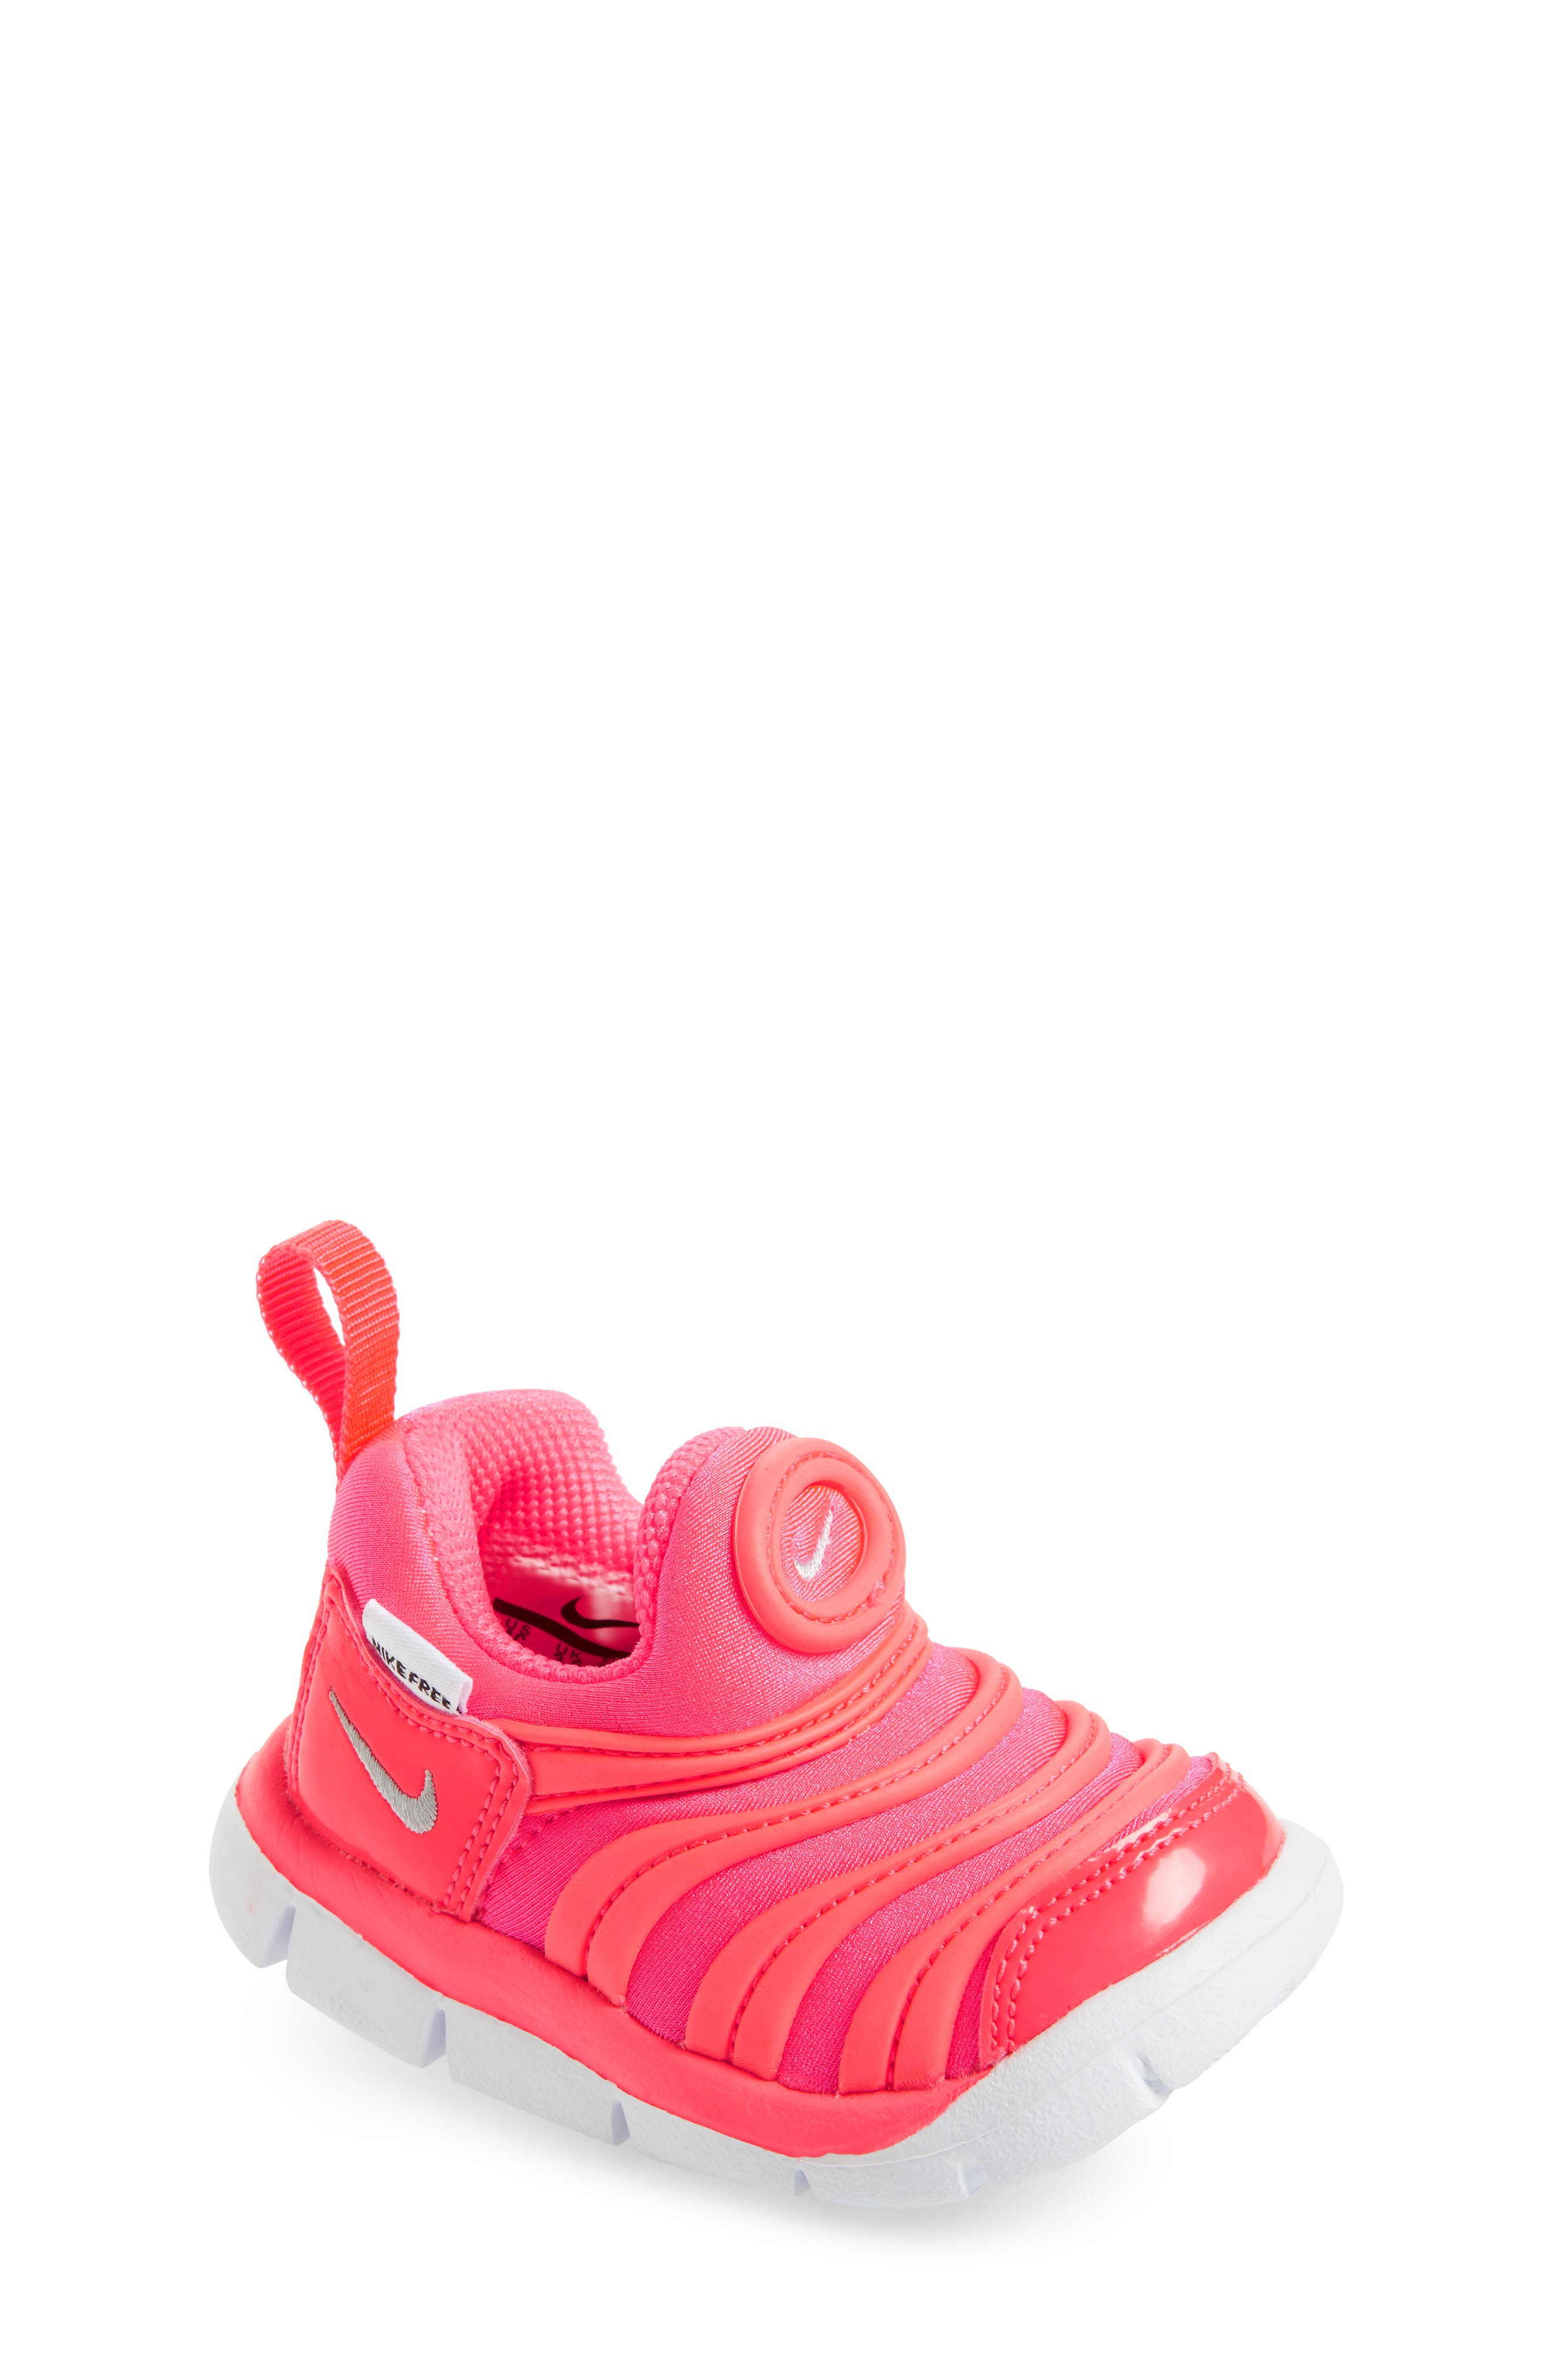 Dynamo Free Sneaker,                         Main,                         color, Racer Pink/ Silver/ Hot Punch